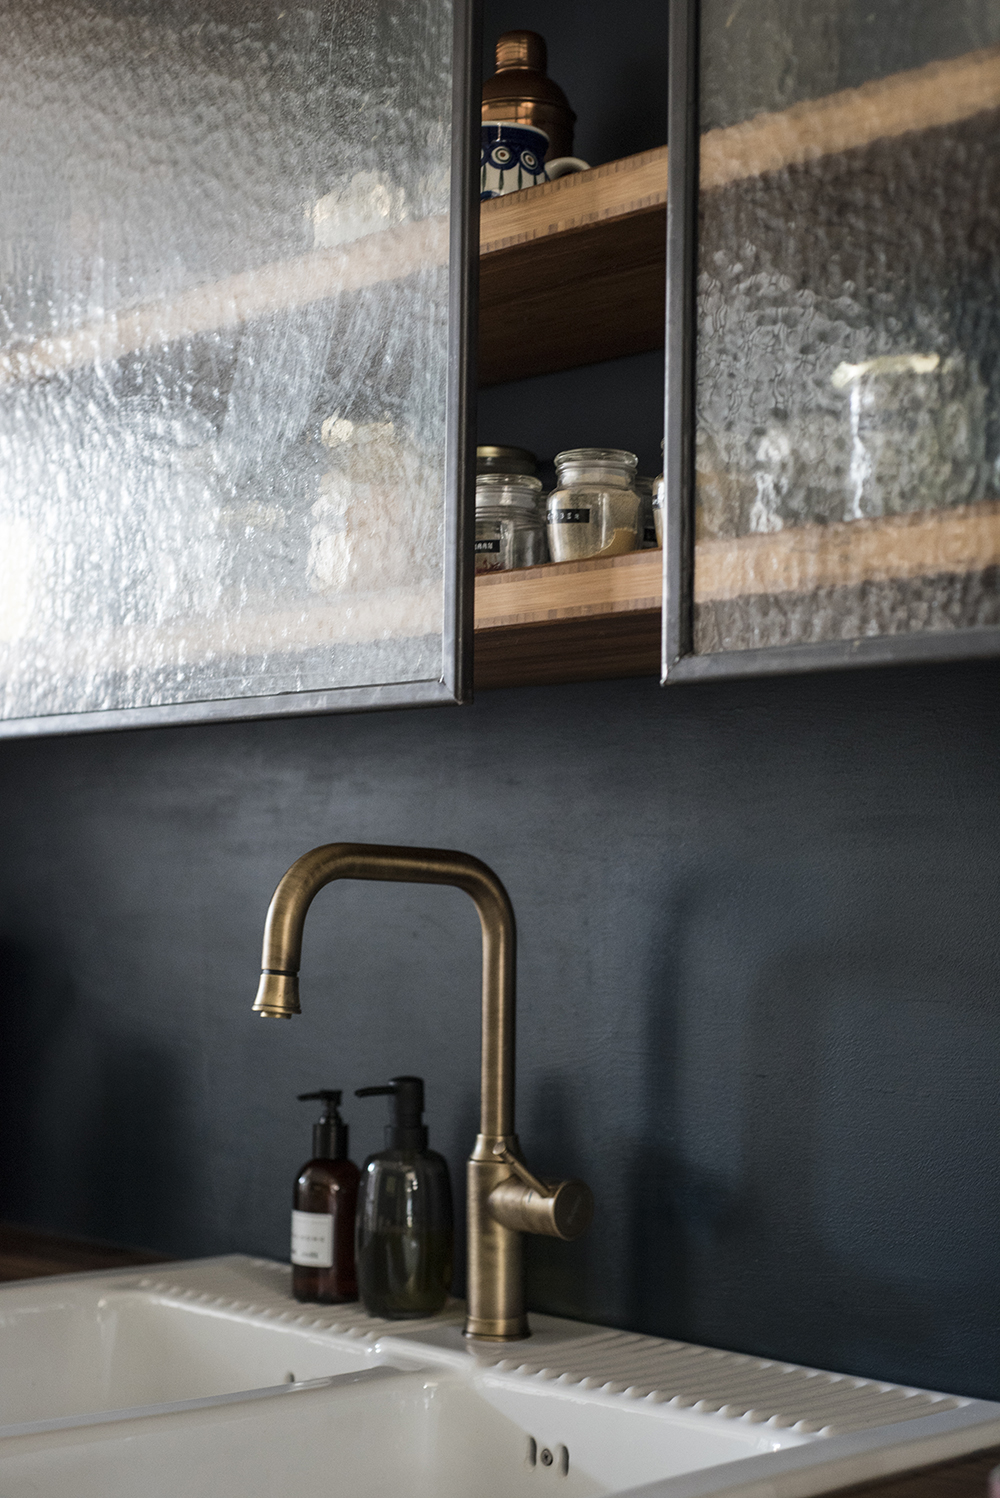 Moody kitchen in blue hues // Farrow & Ball Hague Blue and Nono custom made shelving